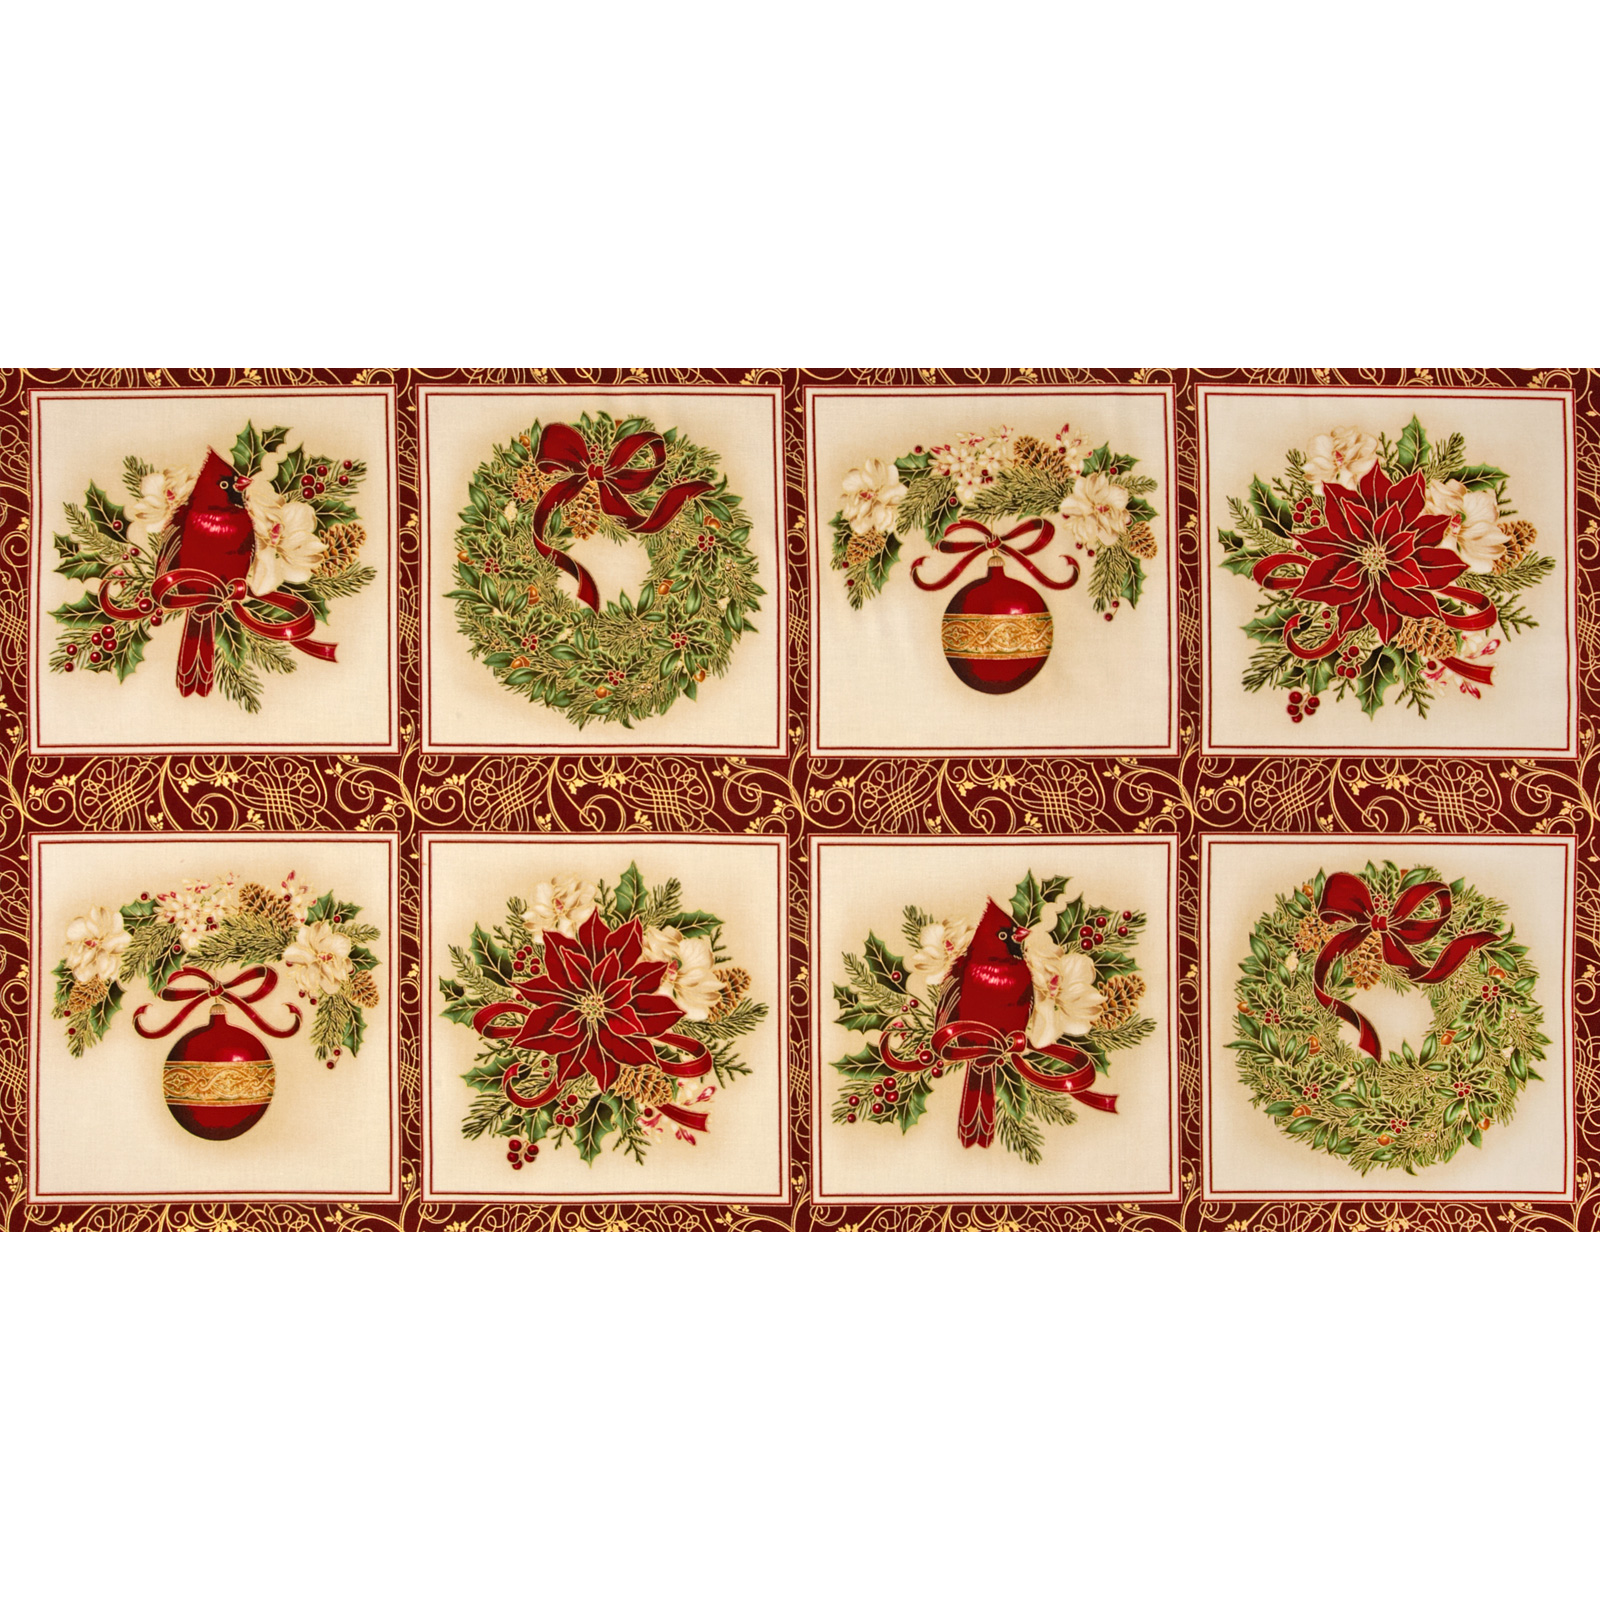 Holiday Flourish 6 Holiday Blocks Panel Metallic Holiday